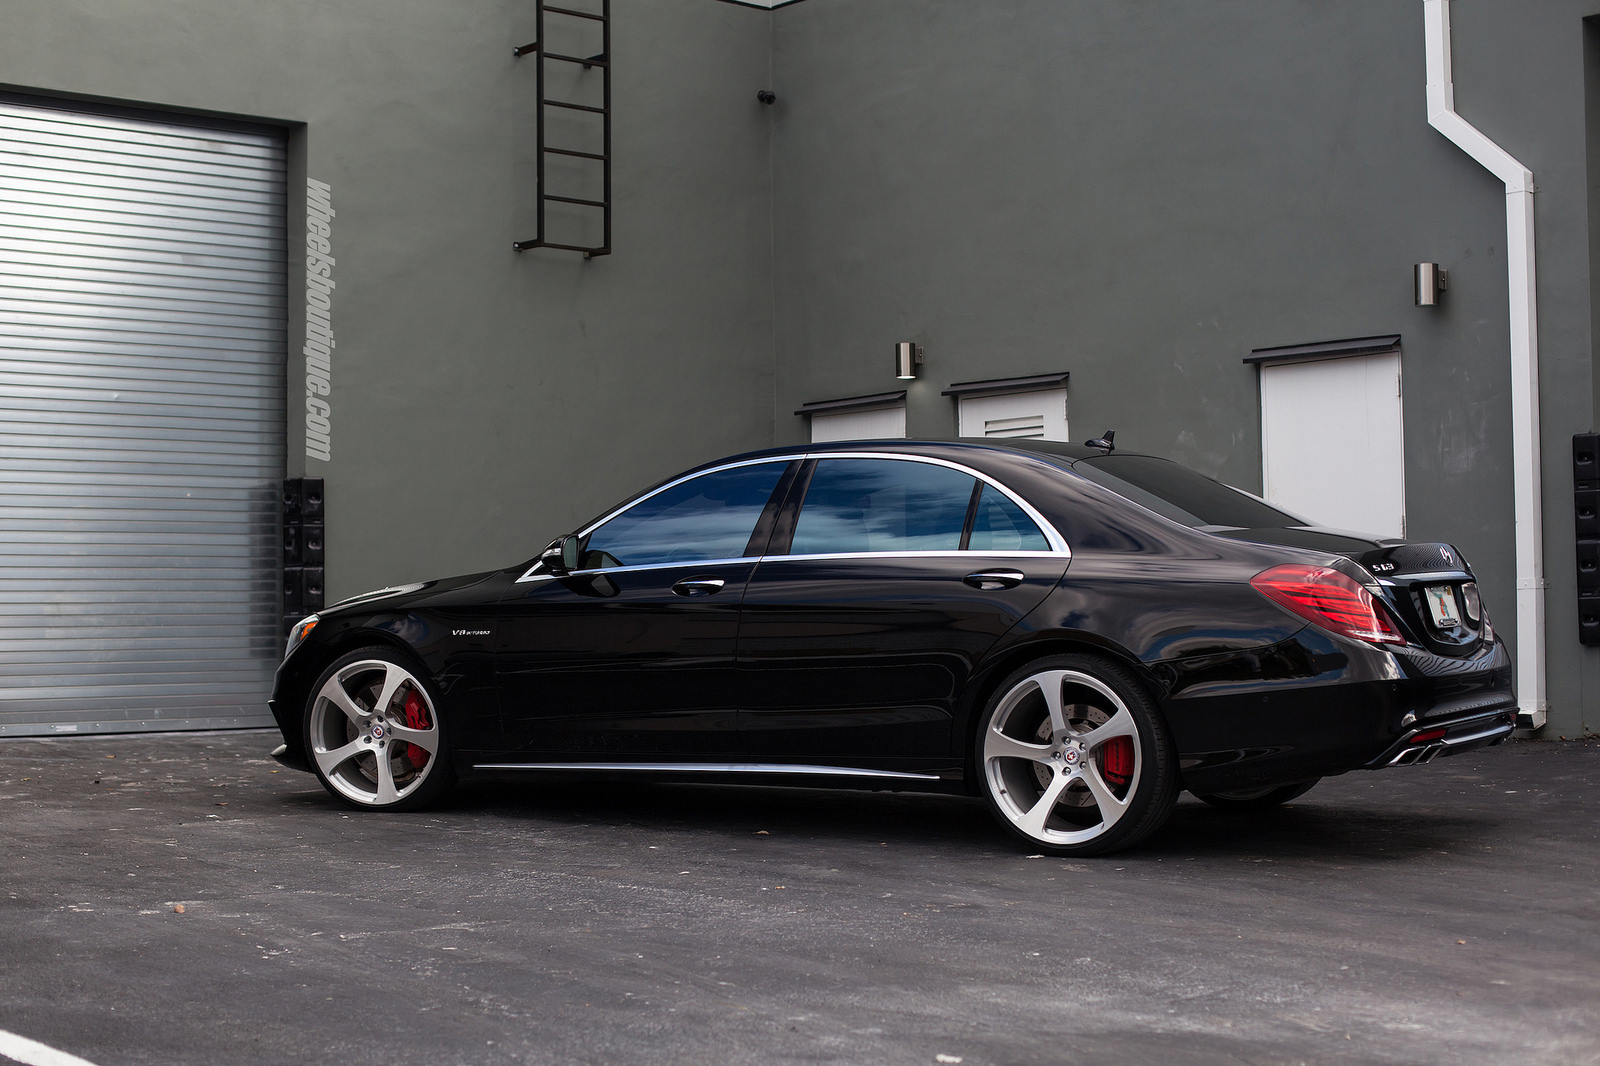 mercedes amg w222 s63 on 22 hre rs102m wheels benztuning. Black Bedroom Furniture Sets. Home Design Ideas